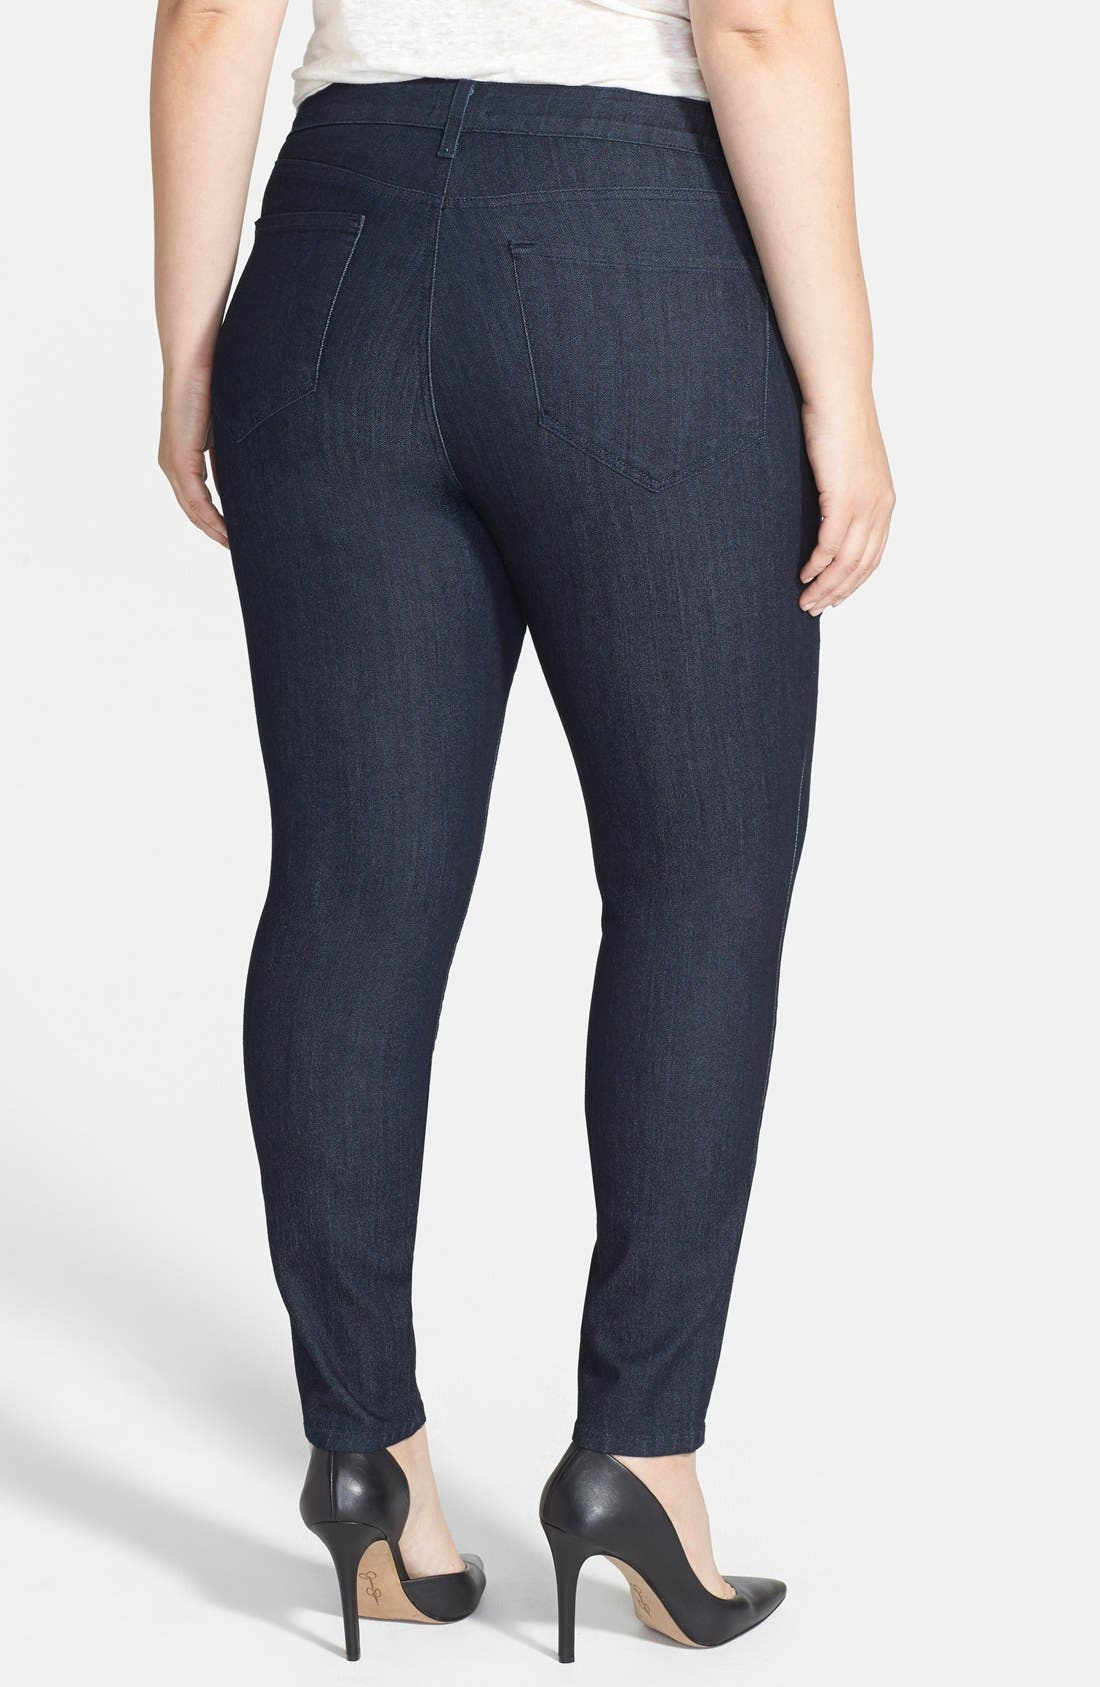 Alternate Image 2  - NYDJ 'Ami' Tonal Stitch Stretch Skinny Jeans (Dark Enzyme) (Plus Size)